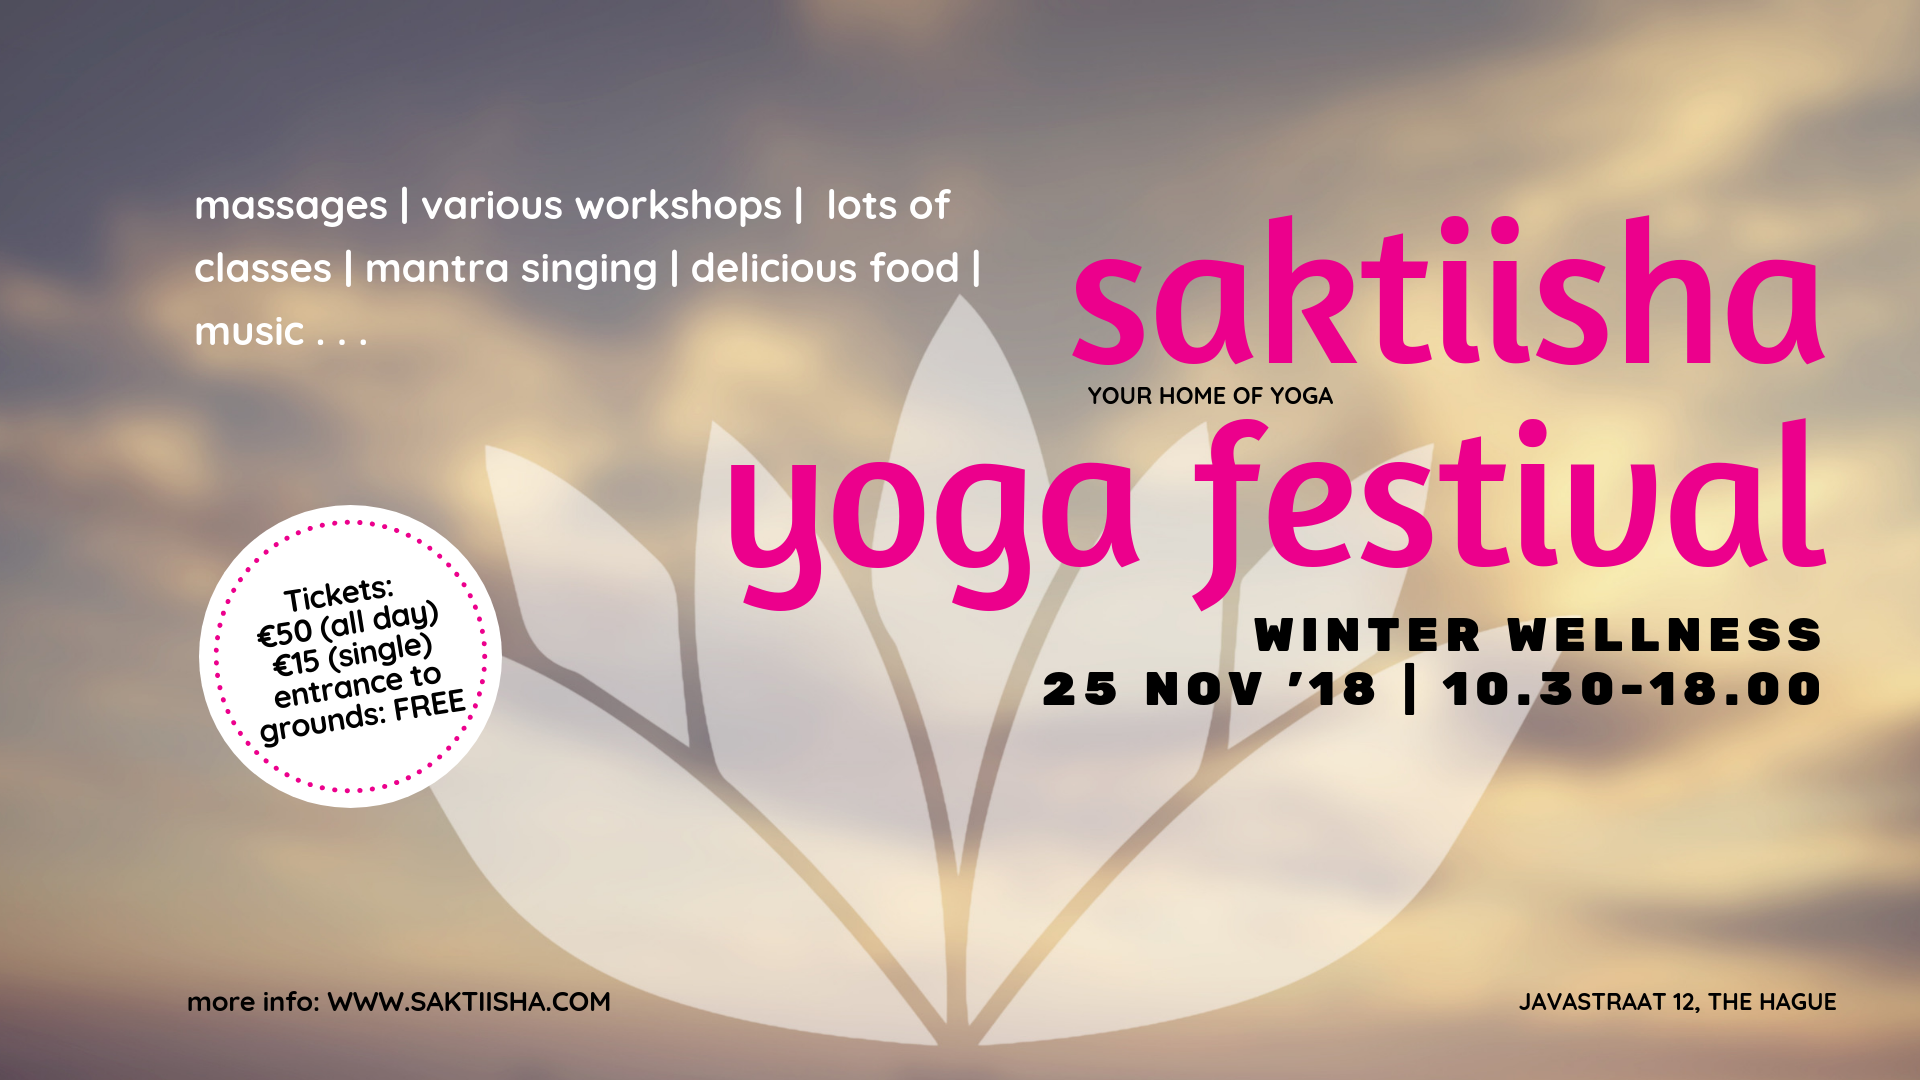 saktiisha yoga festival - winter wellness